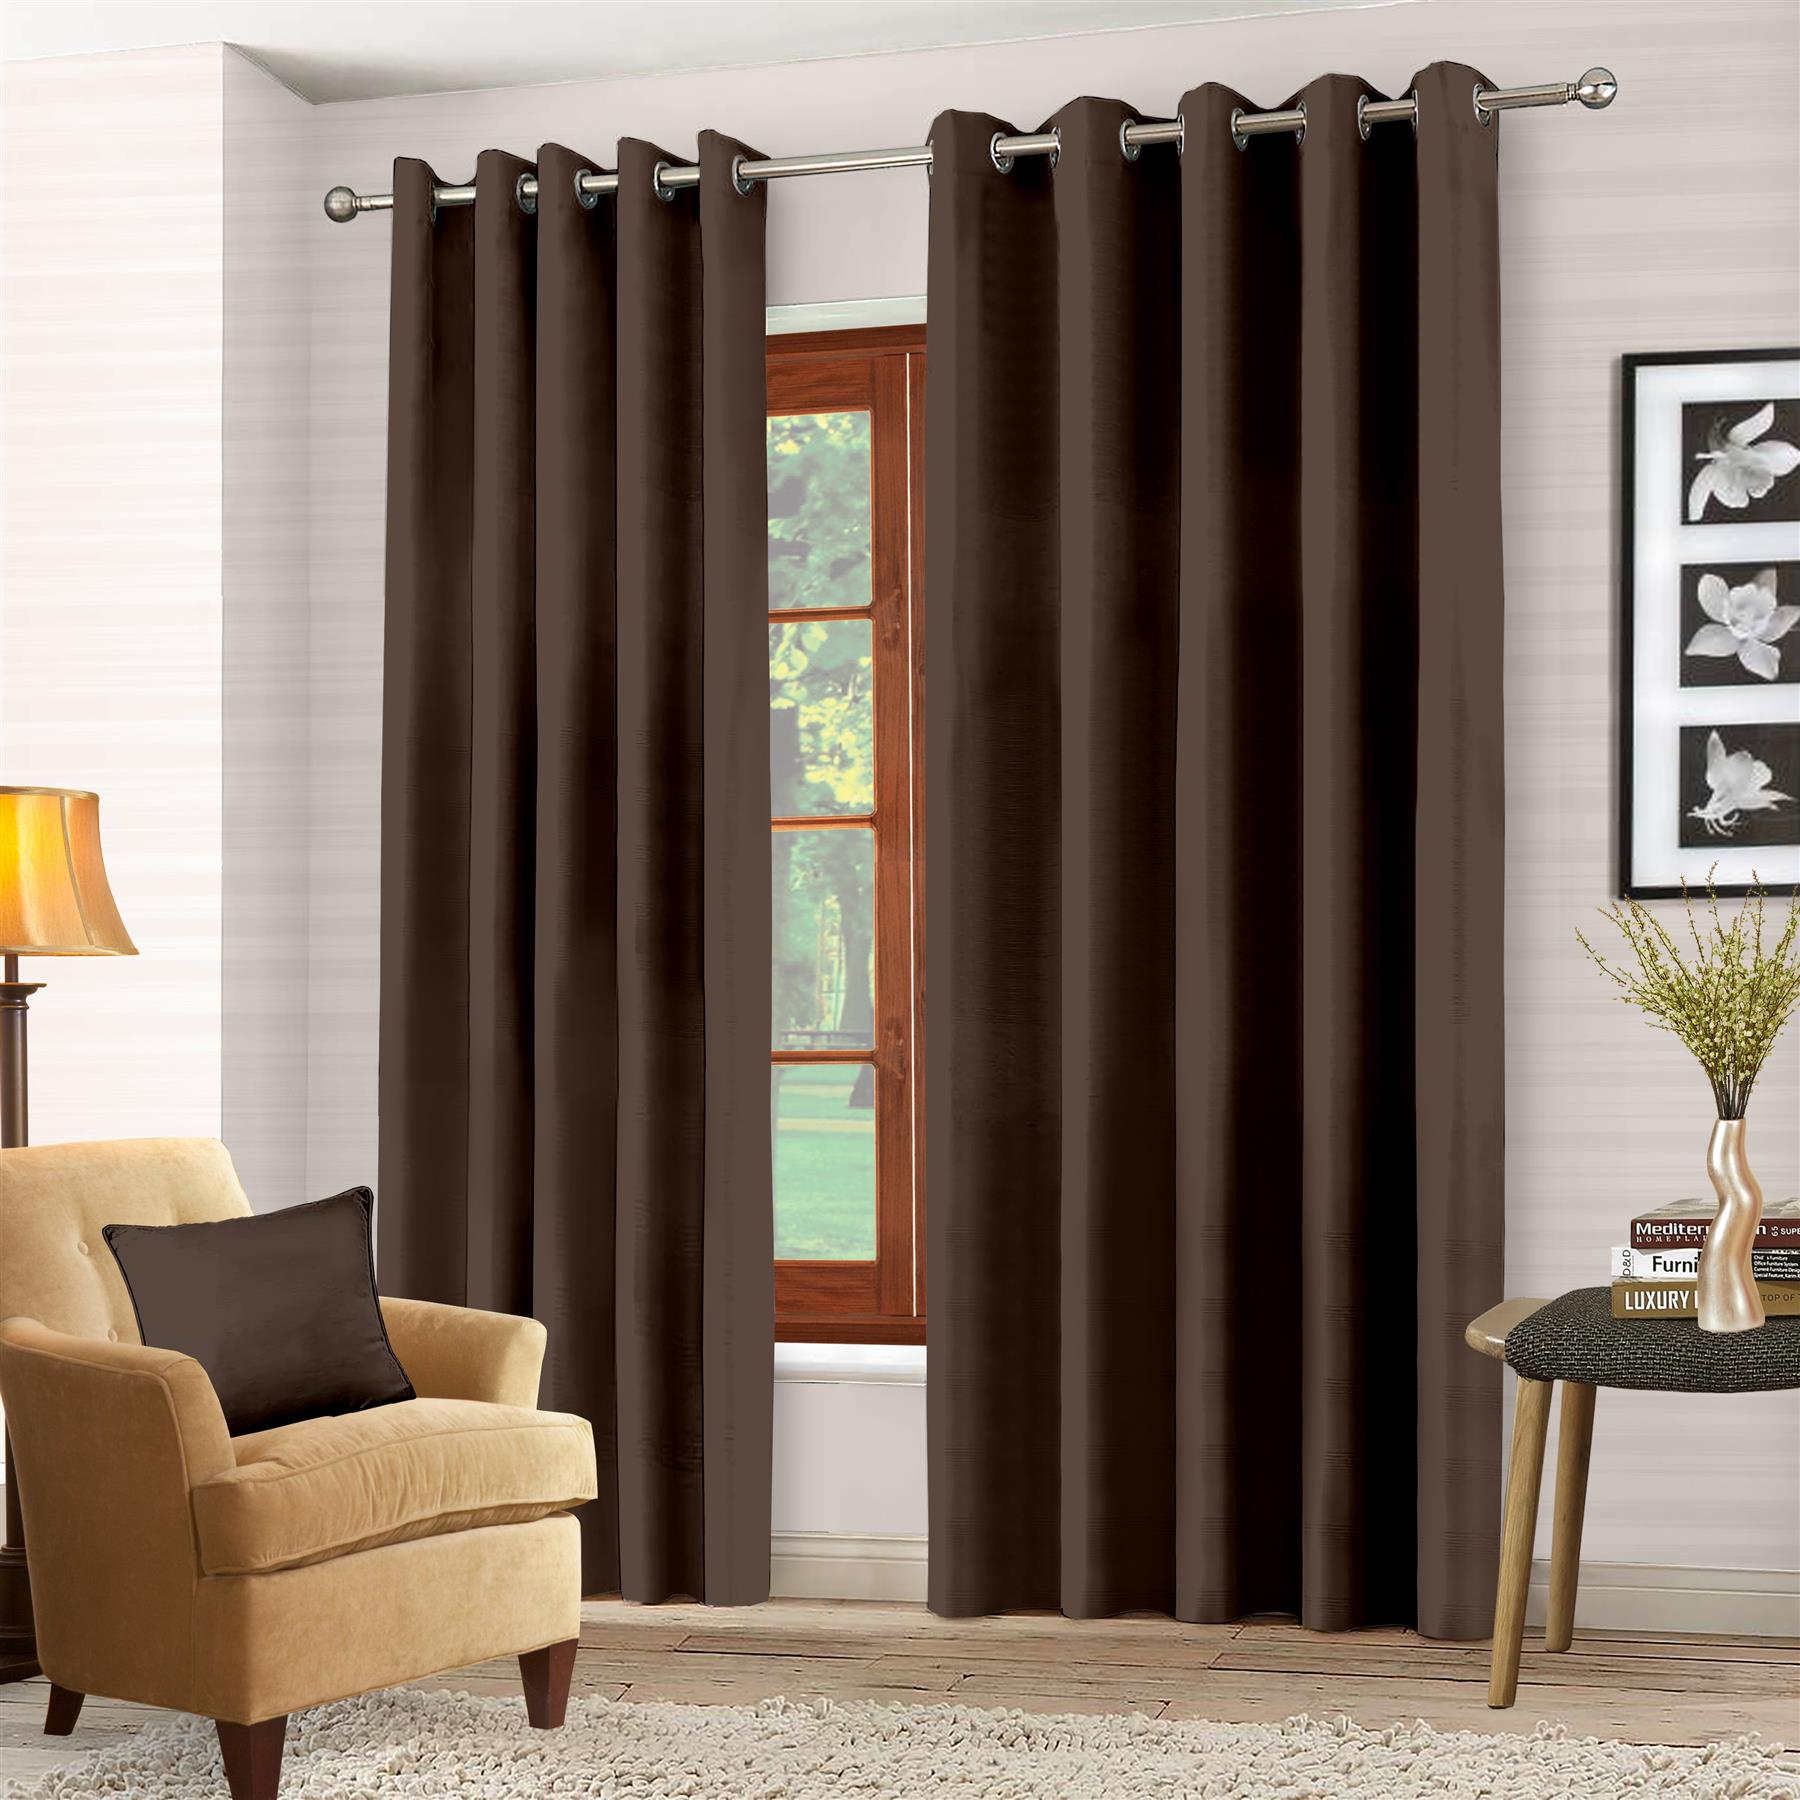 Luxury-Thermal-Blackout-Eyelet-Ring-Top-Curtains-Pair-with-tie-backs thumbnail 13